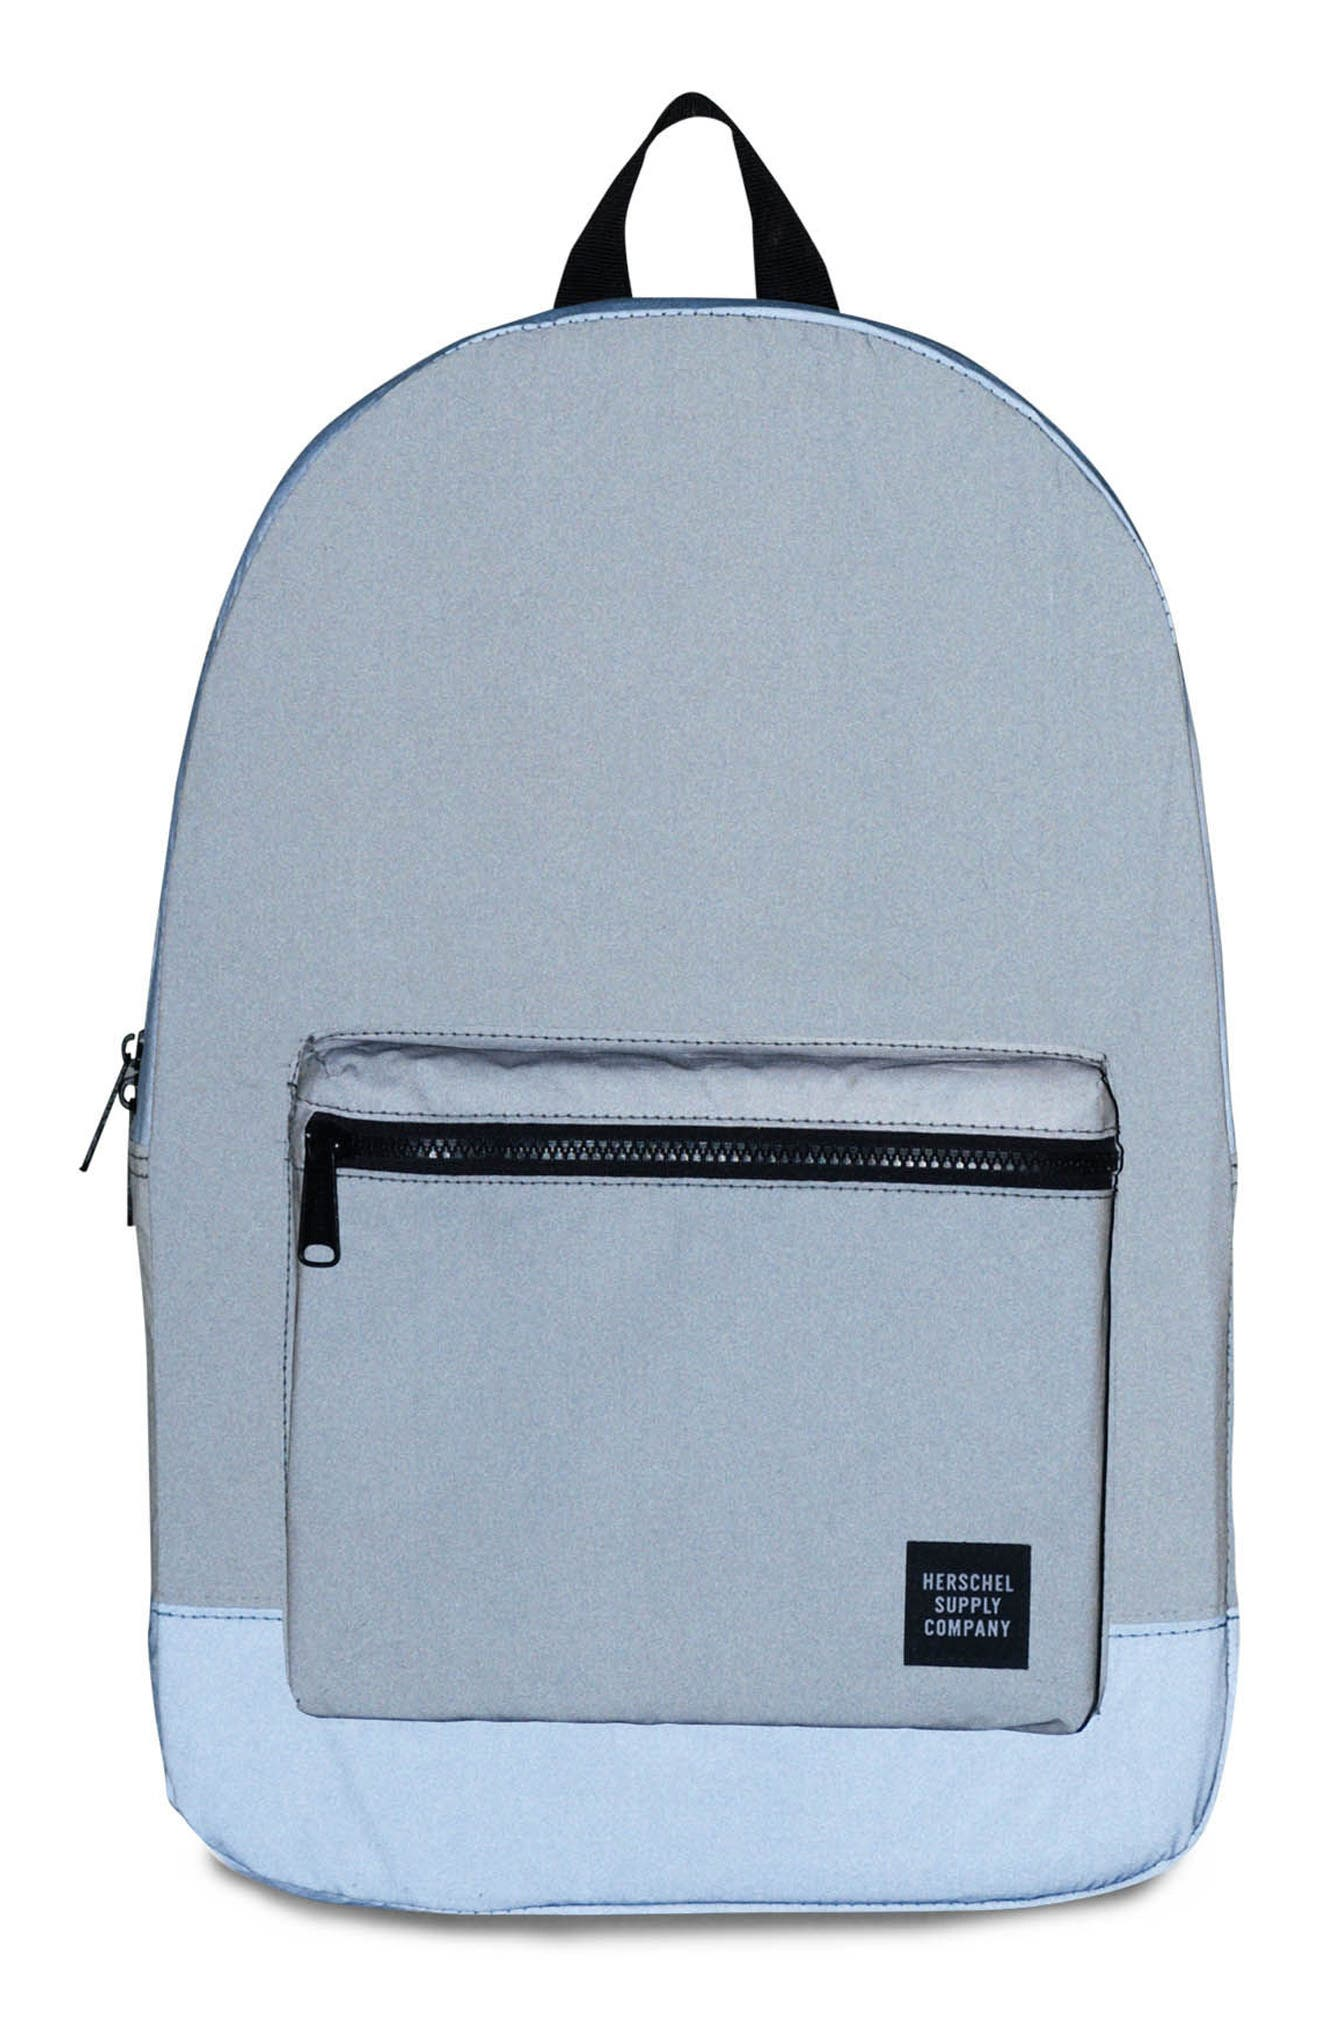 Herschell Supply Co. Packable Reflective Backpack,                             Alternate thumbnail 4, color,                             005